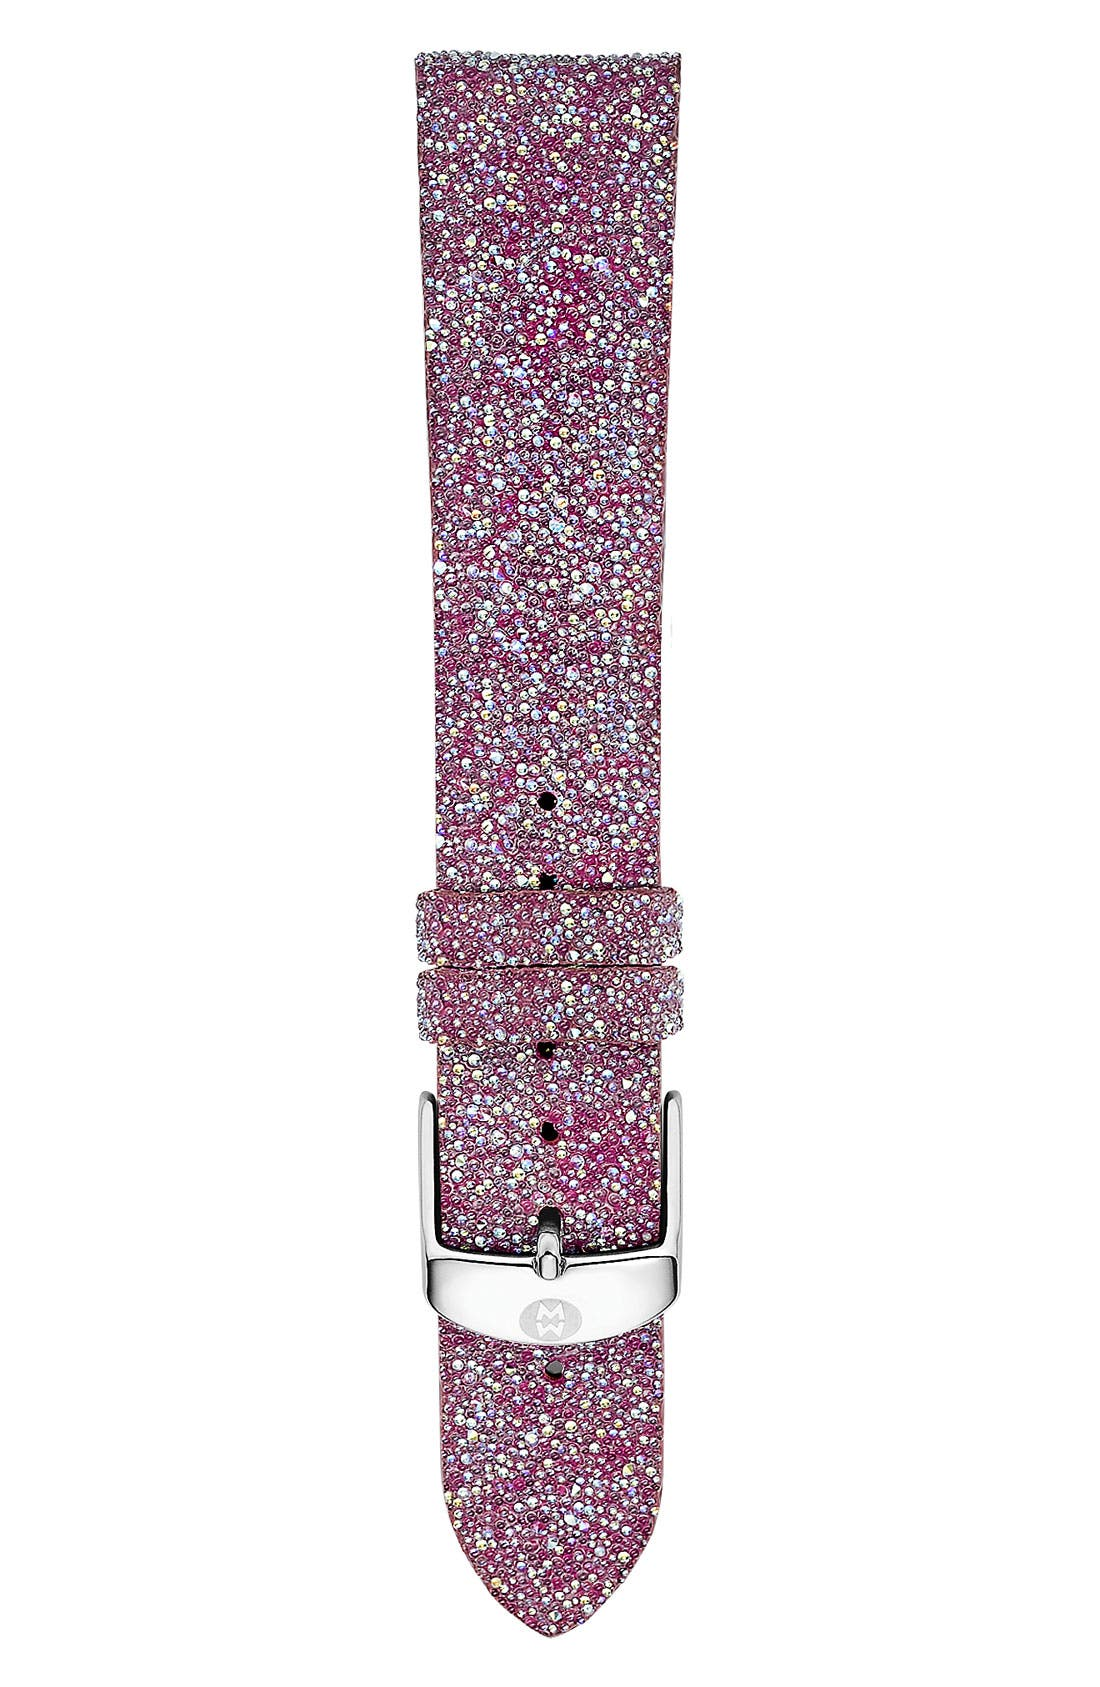 Alternate Image 1 Selected - MICHELE 16mm Glitter Watch Strap